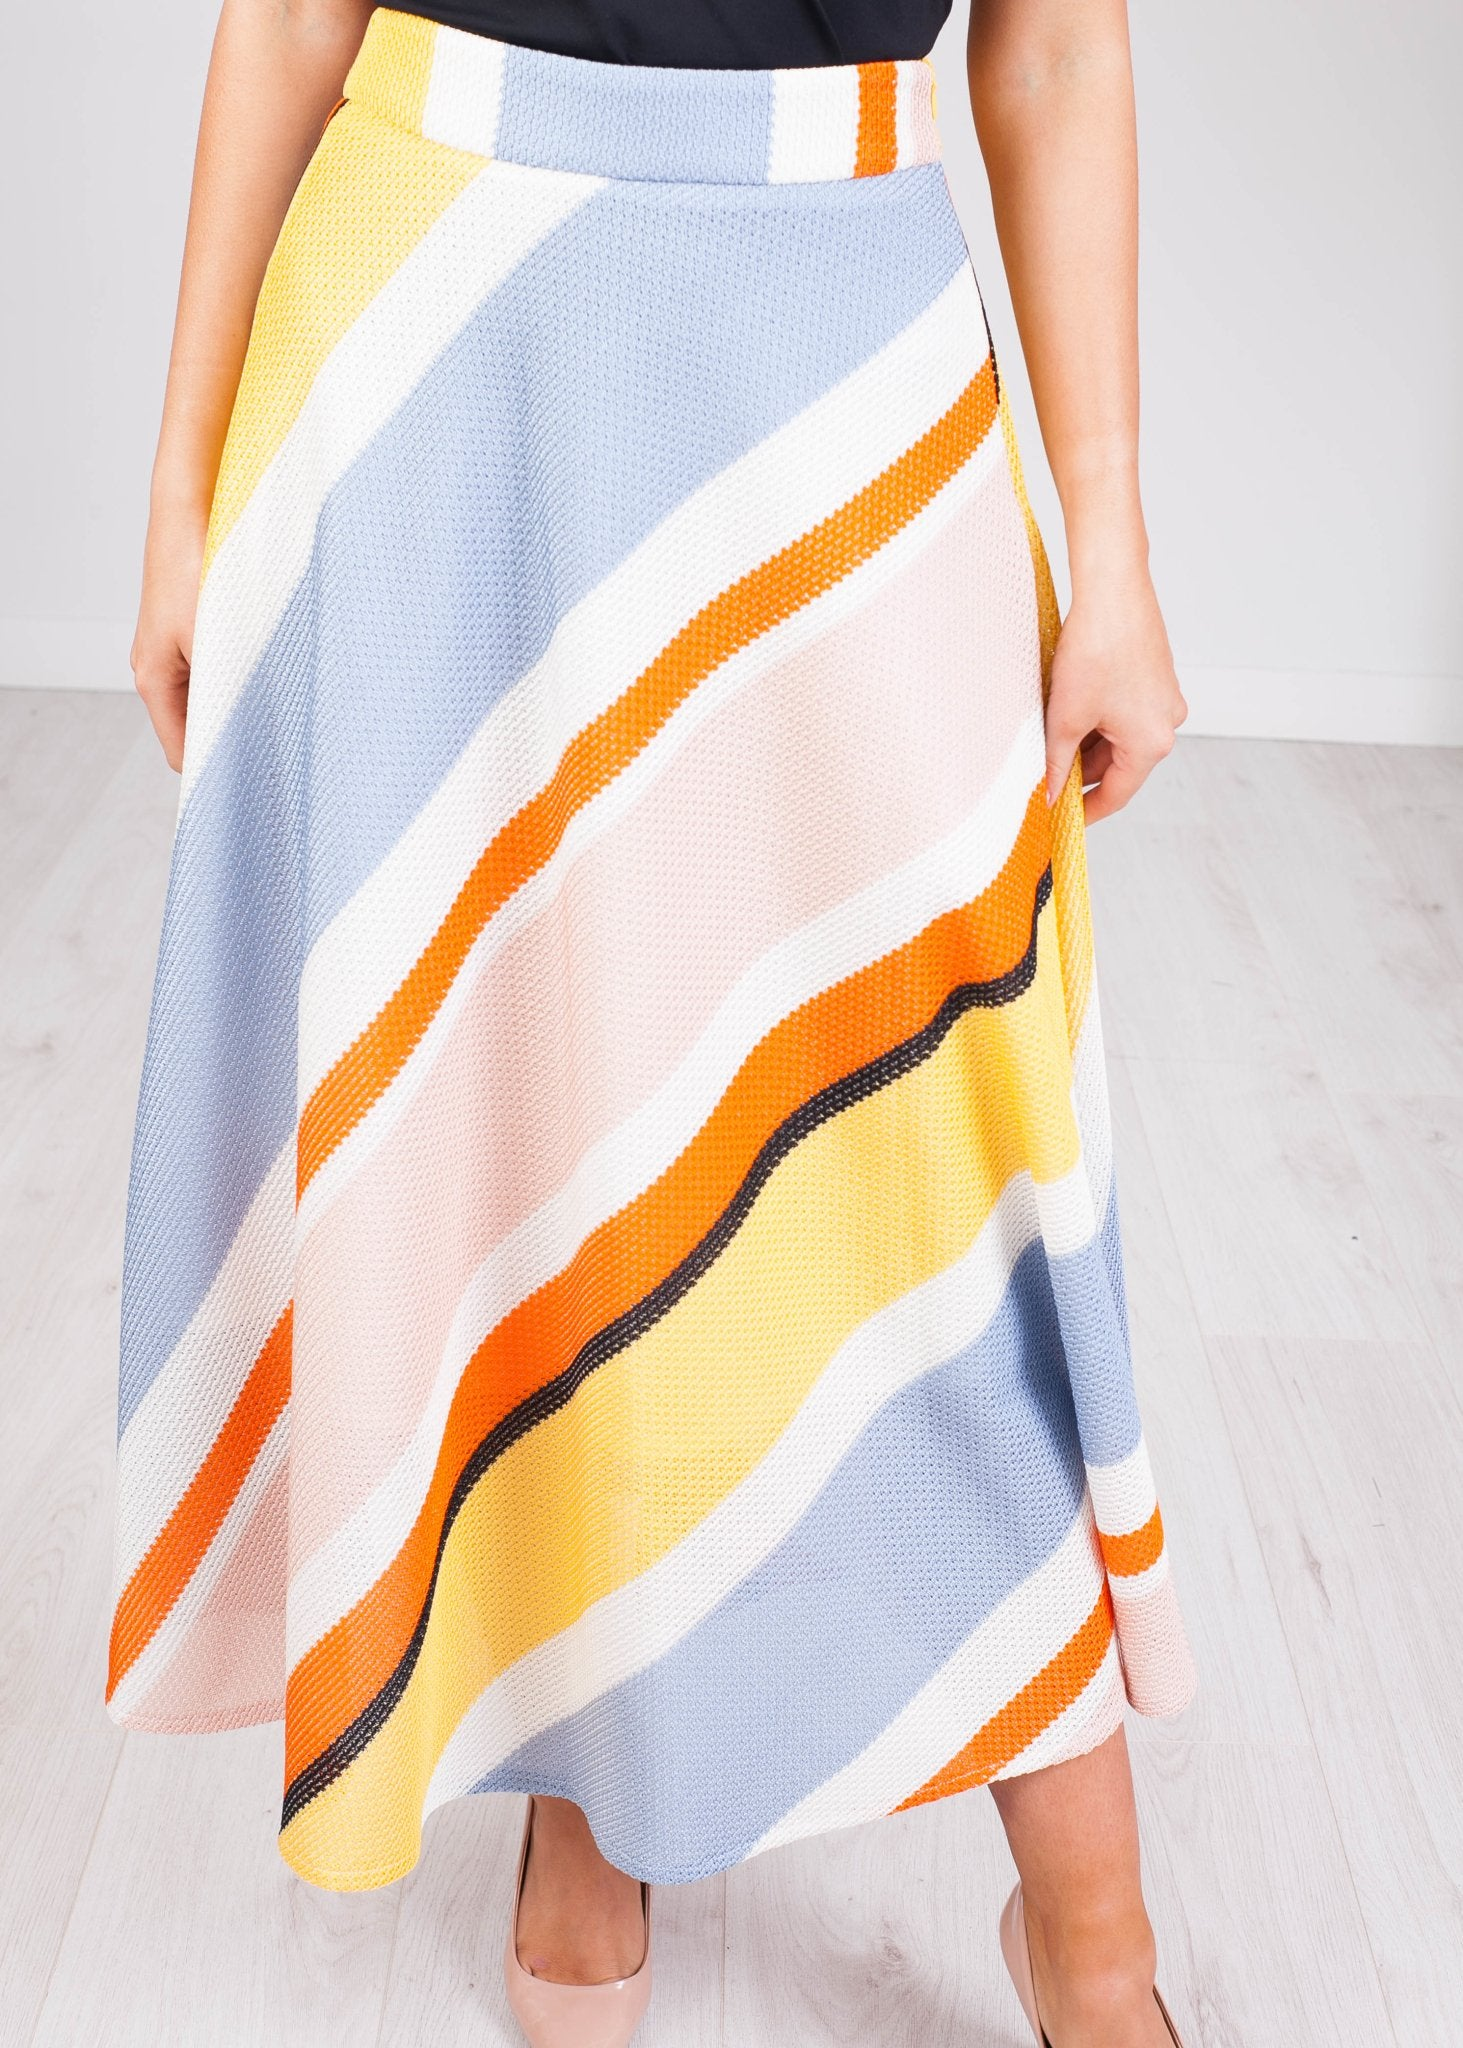 Savannah Multicoloured Midi Skirt - The Walk in Wardrobe